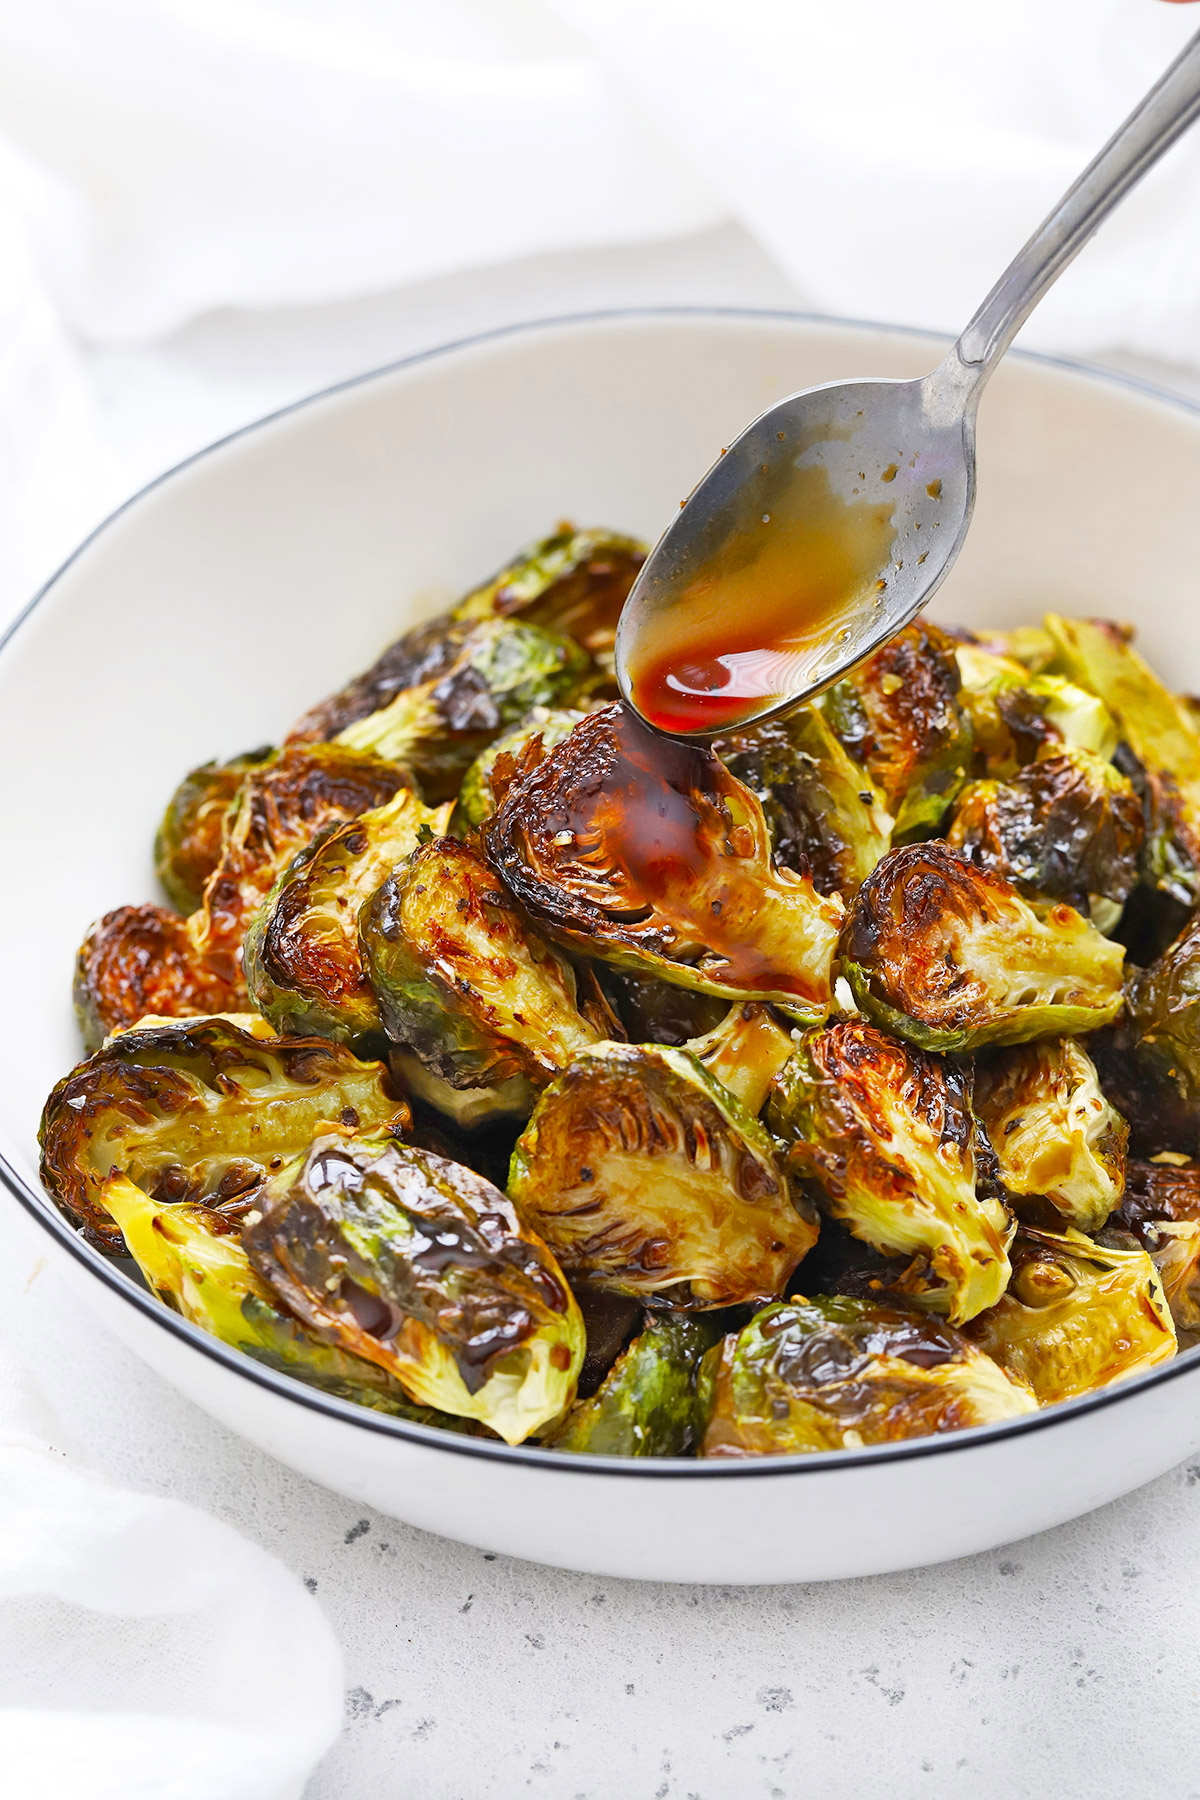 Drizzling balsamic glaze onto roasted Brussels sprouts